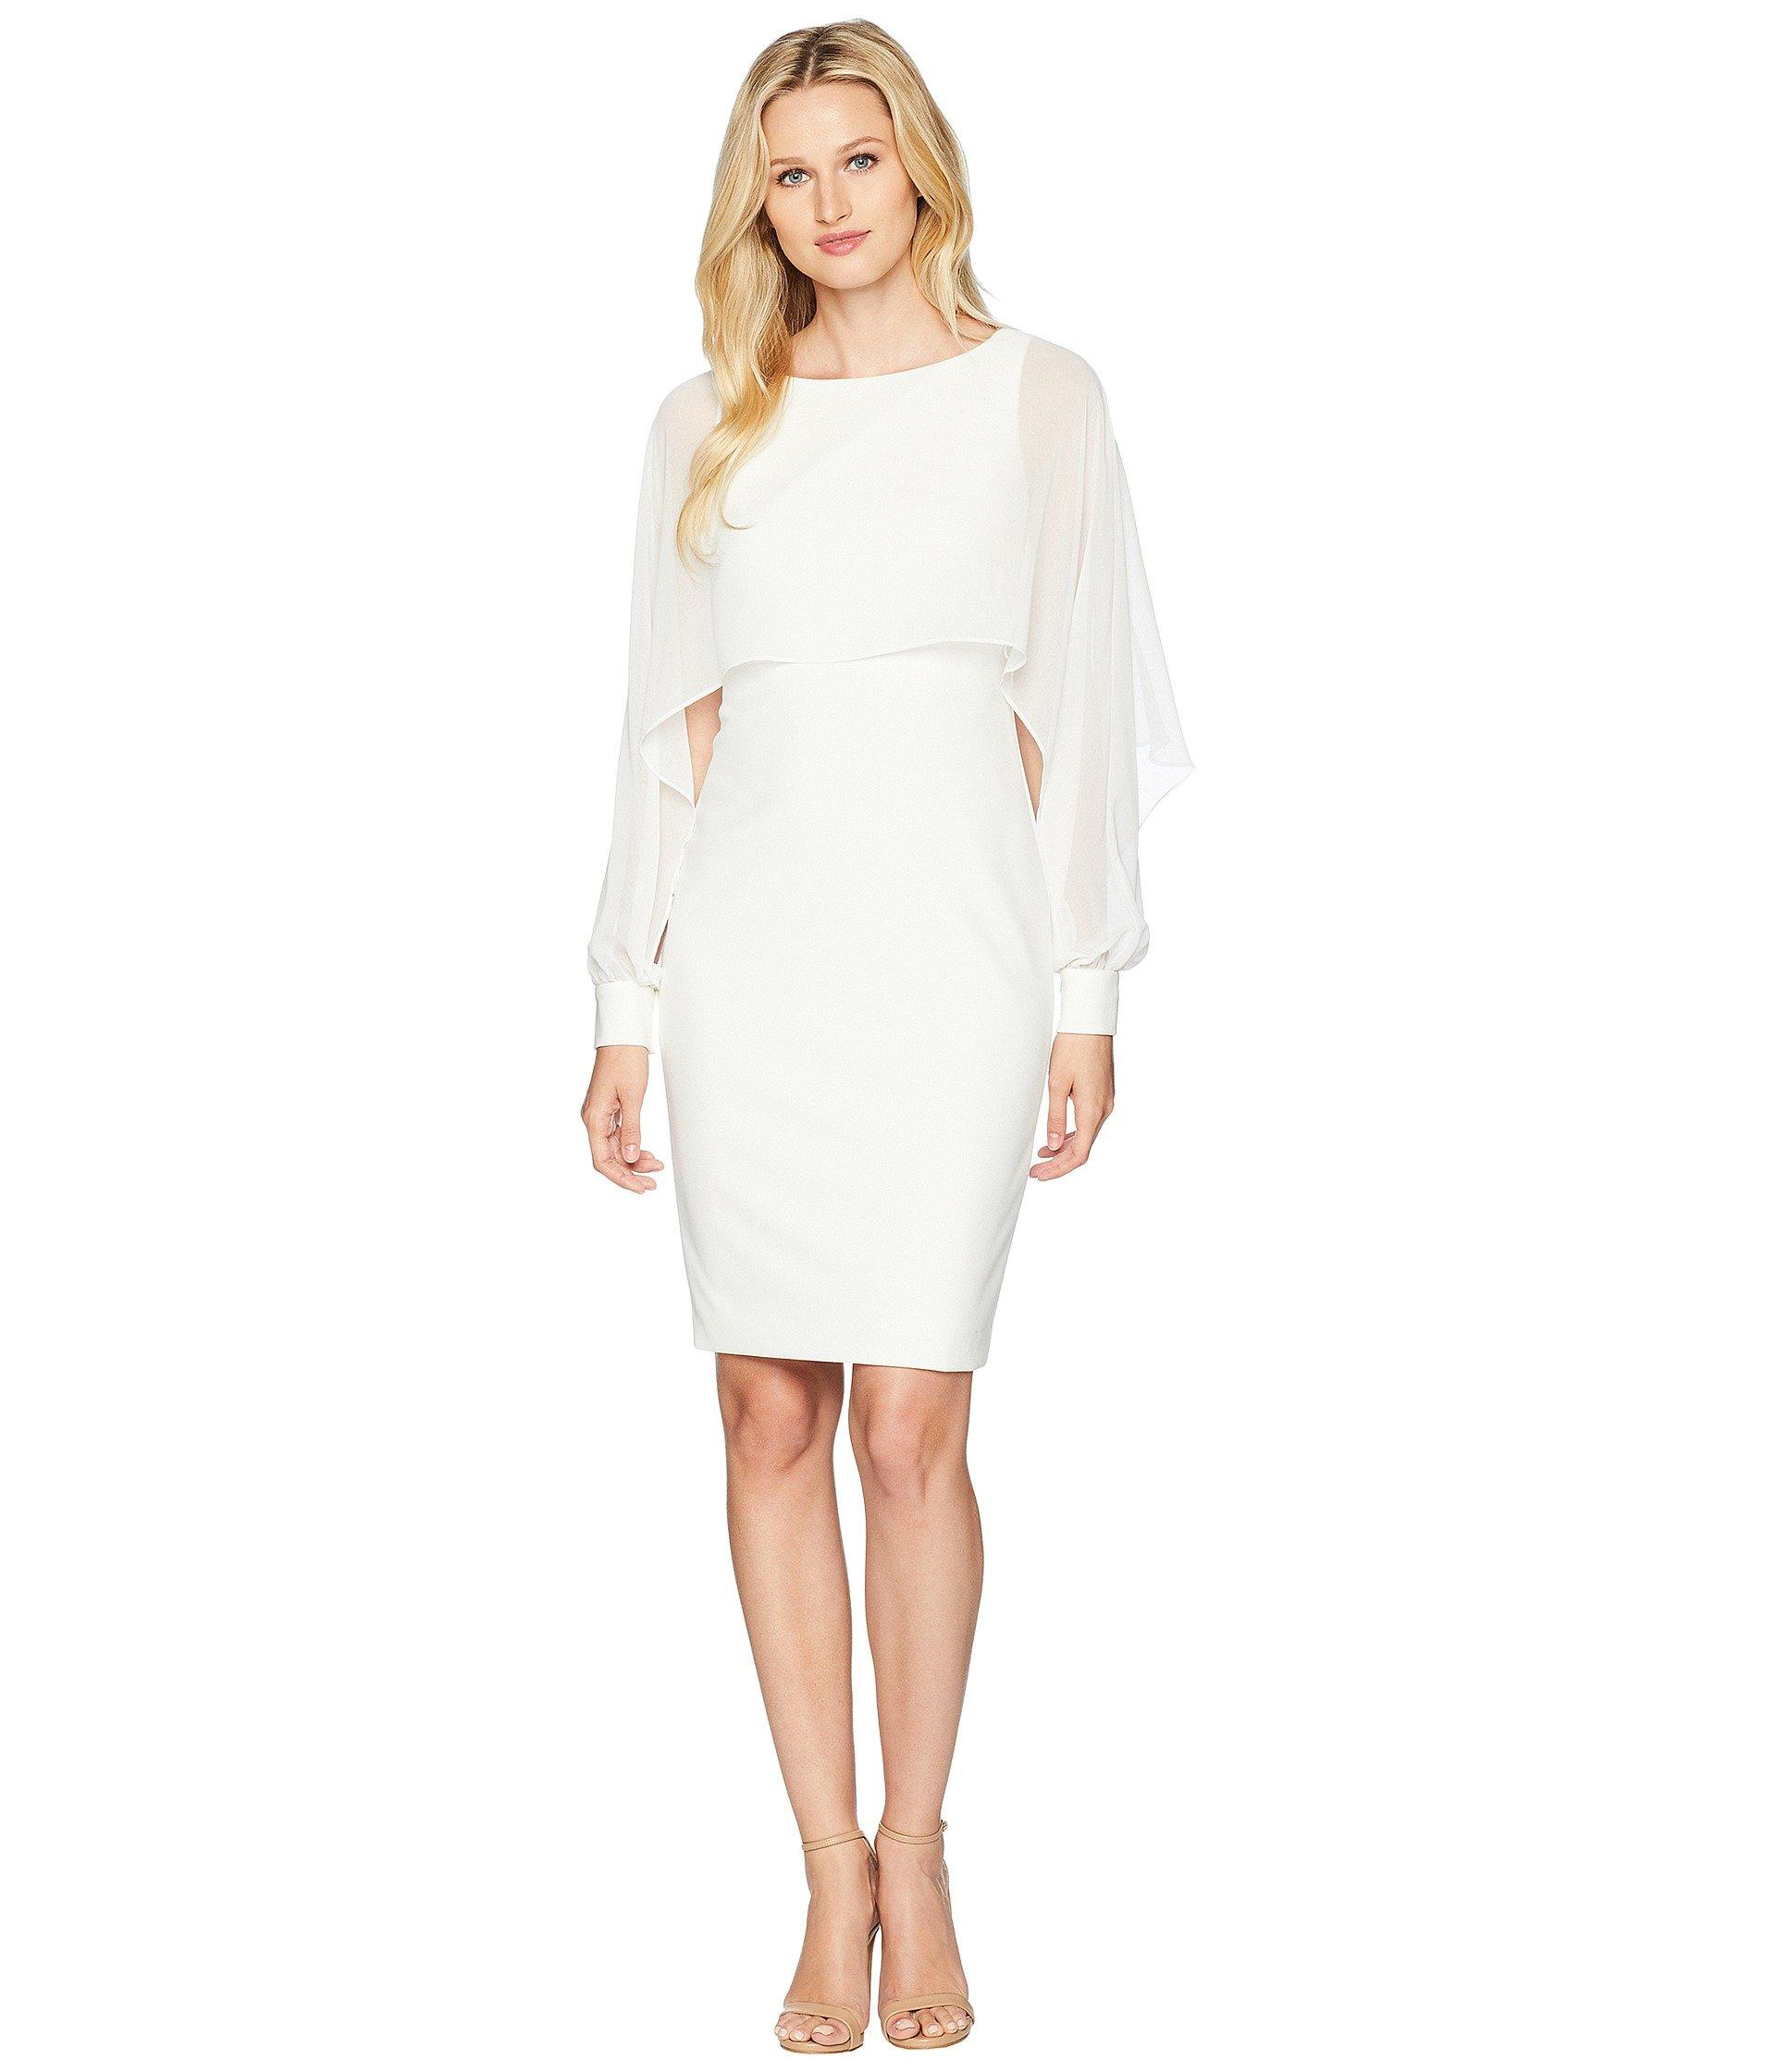 c727e557726d8 Lyst - Lauren by Ralph Lauren Dali Day Dress in White - Save 37%